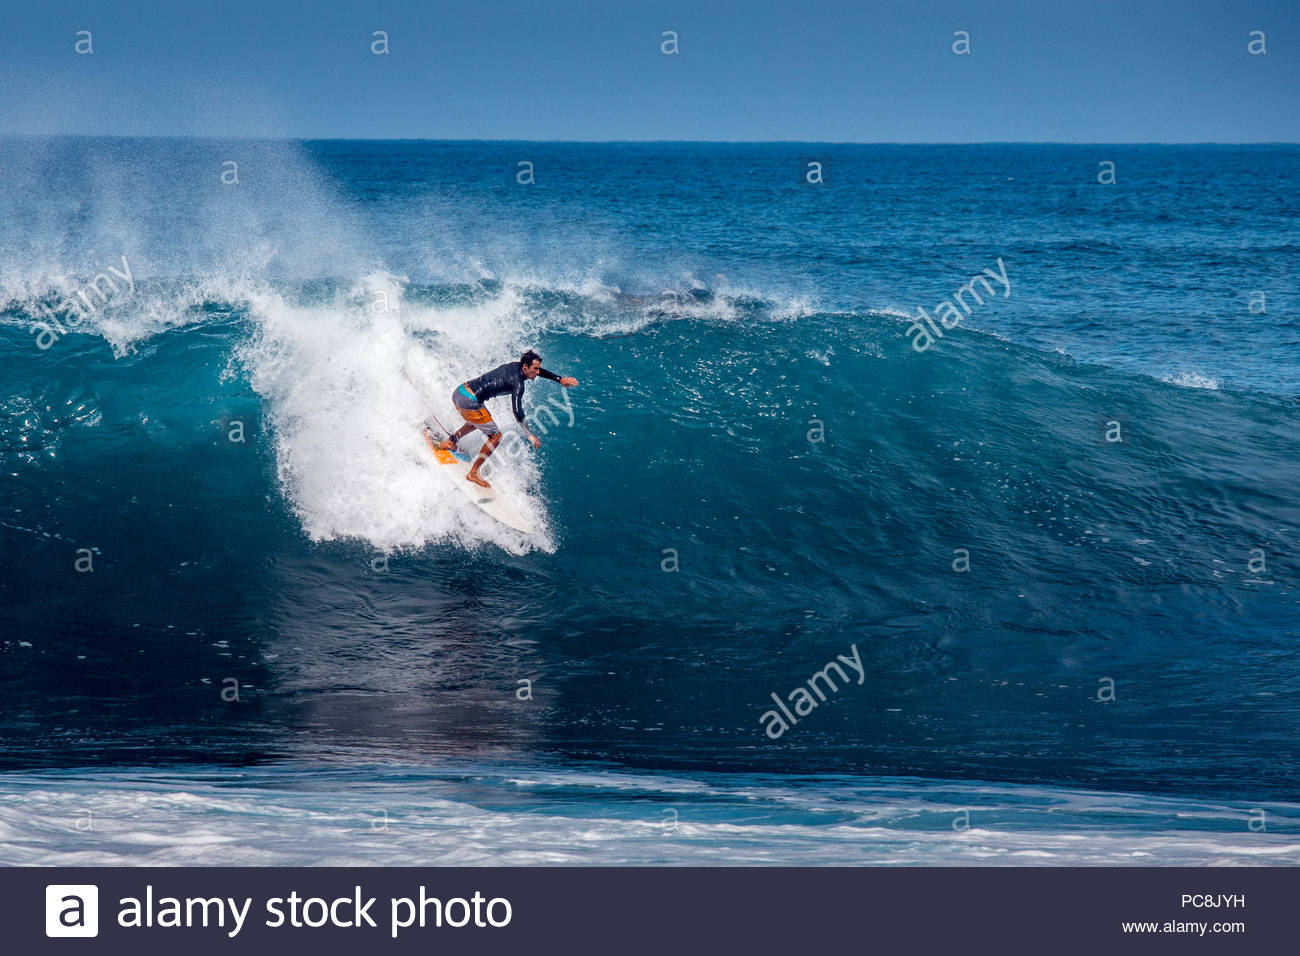 A surfer drops into a wave at Rocky Point. - Stock Image